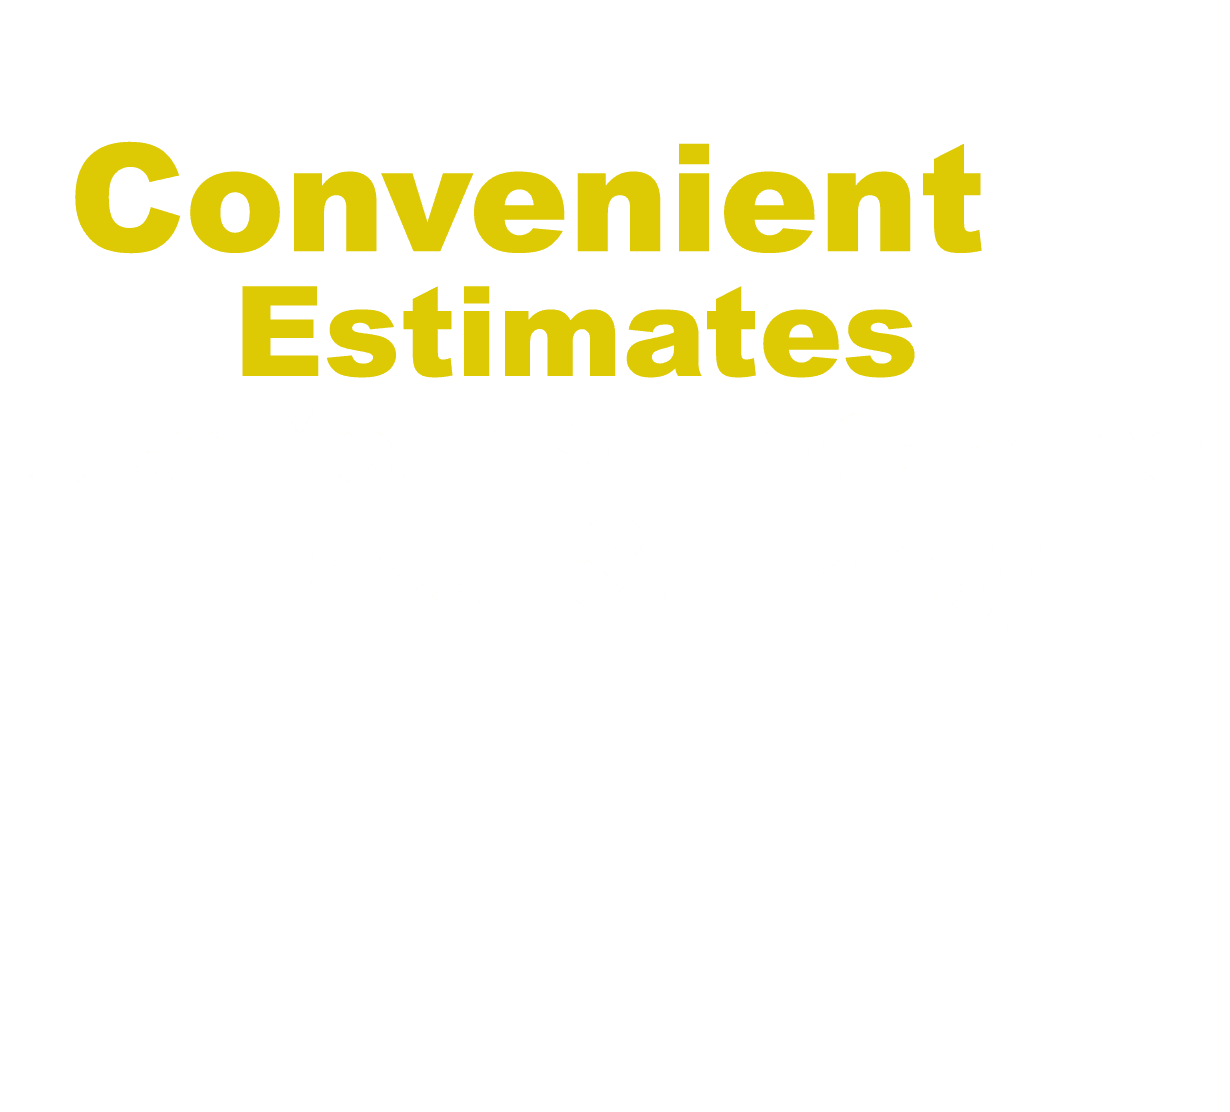 Collison Pros allows you to get estimates using your mobile phone